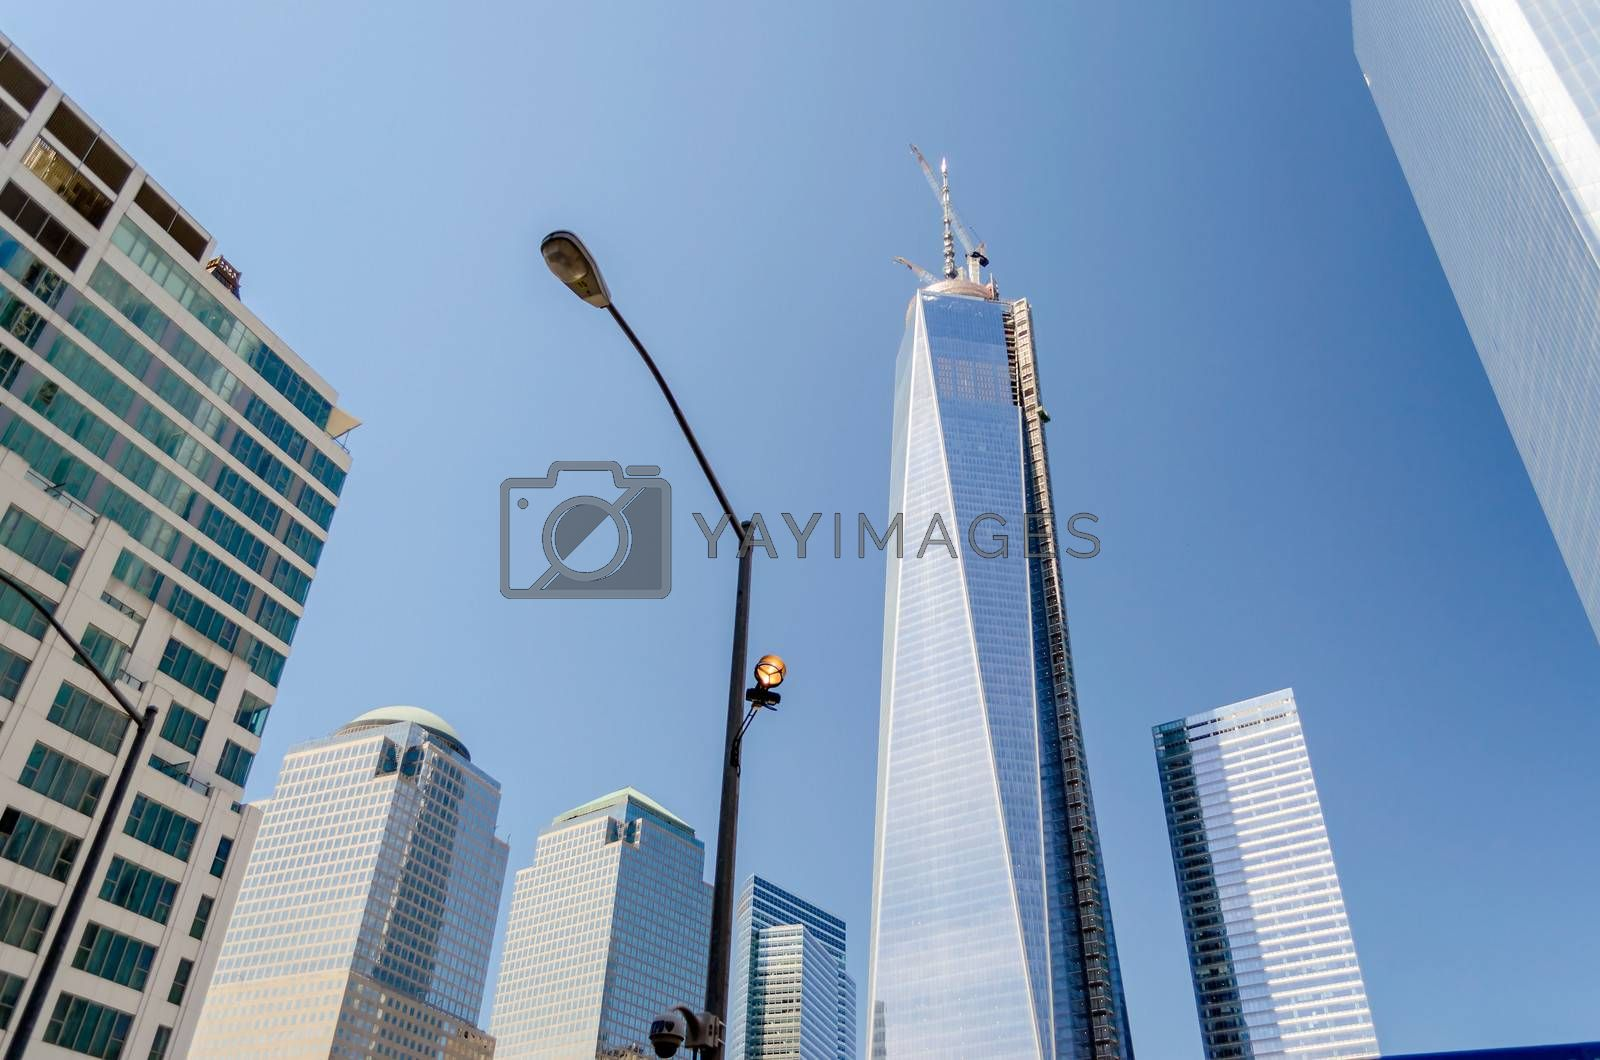 NEW YORK - MAY 27: One World Trade Center (also known as the Freedom Tower) is shown under construction on May 27, 2013 in New York City, New York.